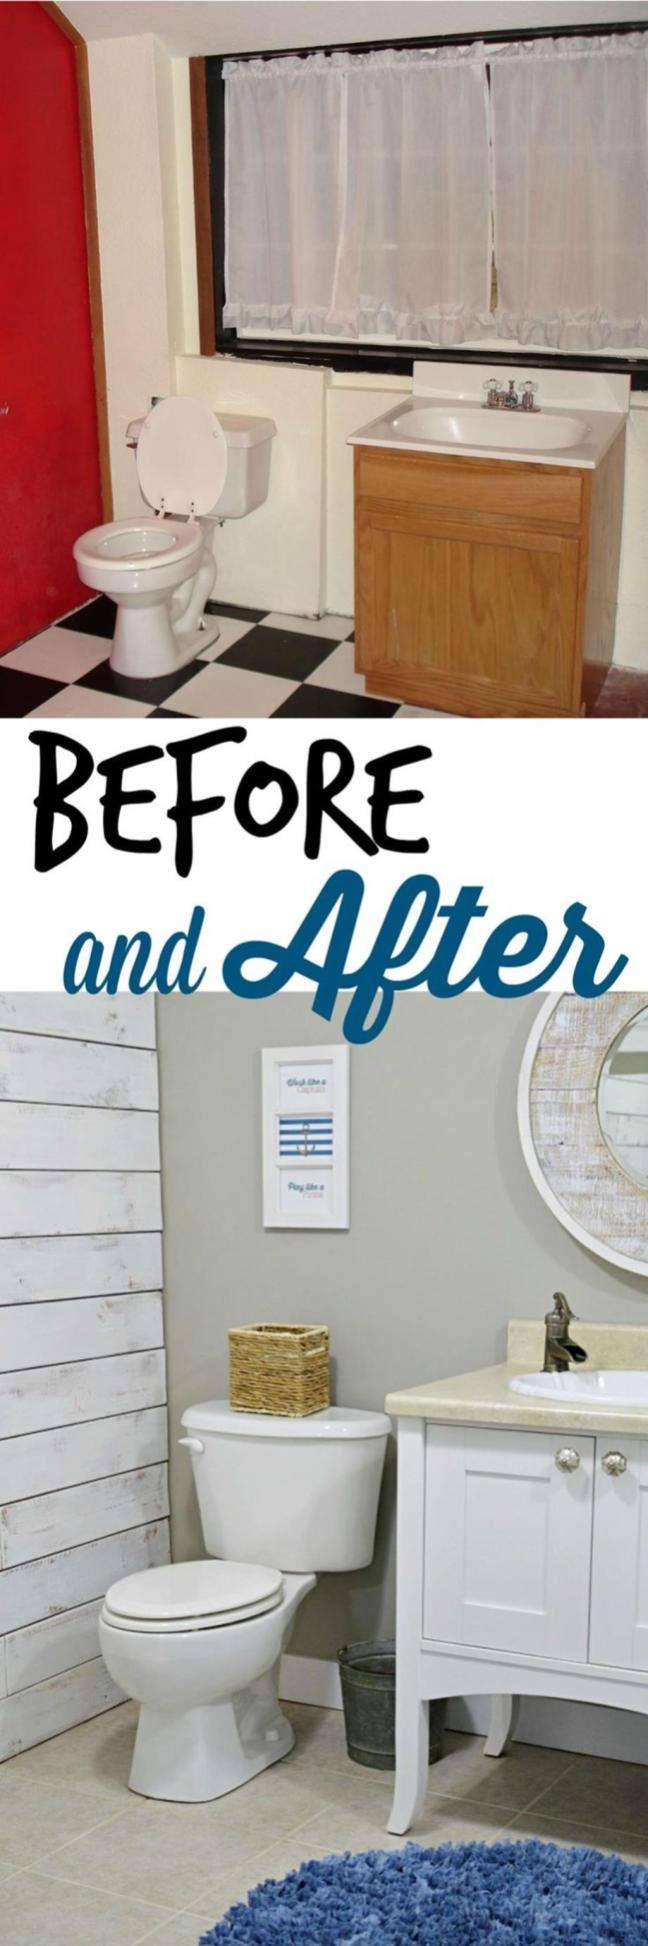 DIY Small Laundry Room Makeovers On a Budget 5